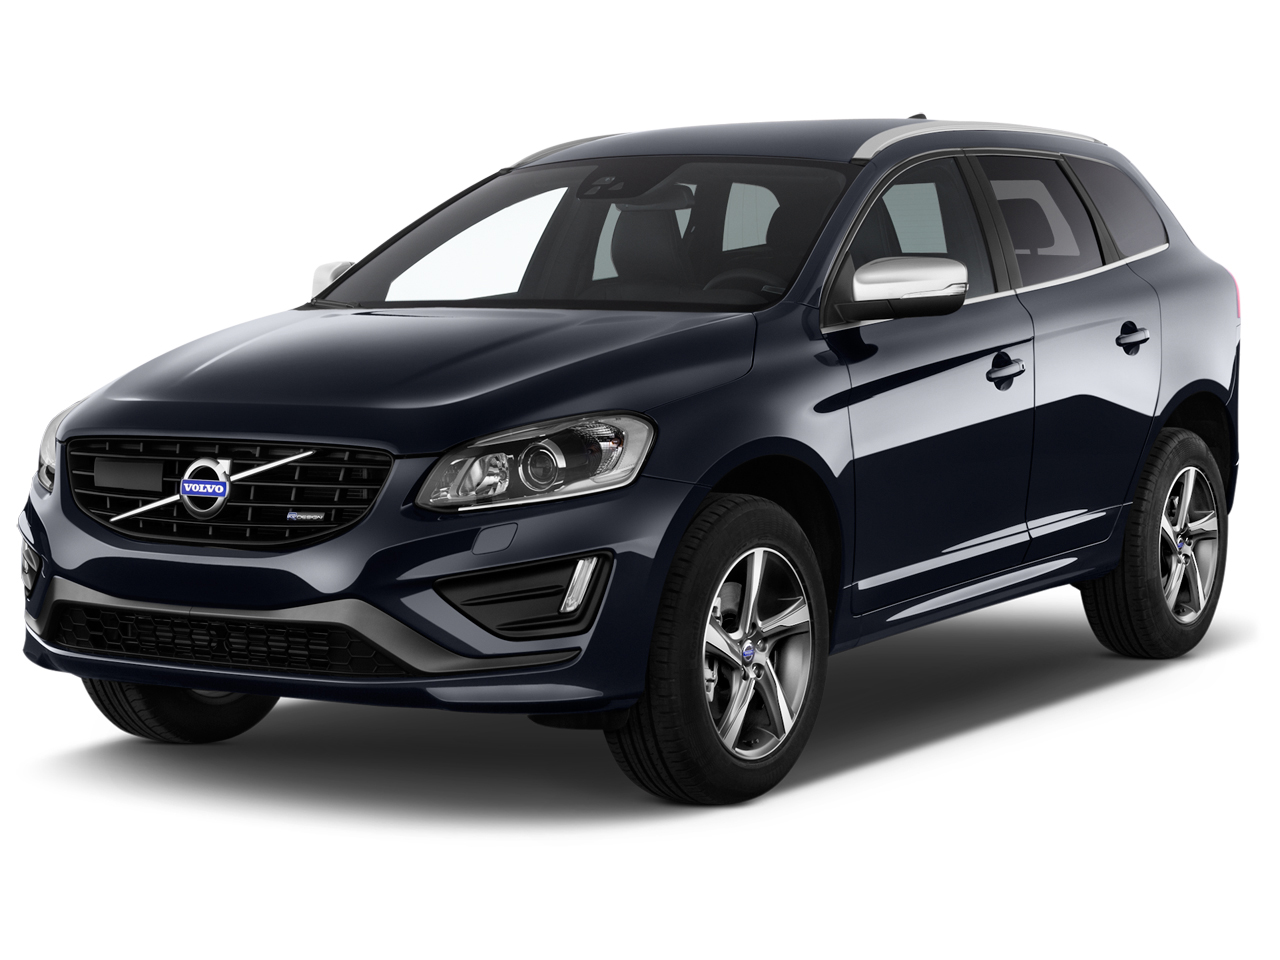 2016 volvo xc60 gas mileage the car connection. Black Bedroom Furniture Sets. Home Design Ideas